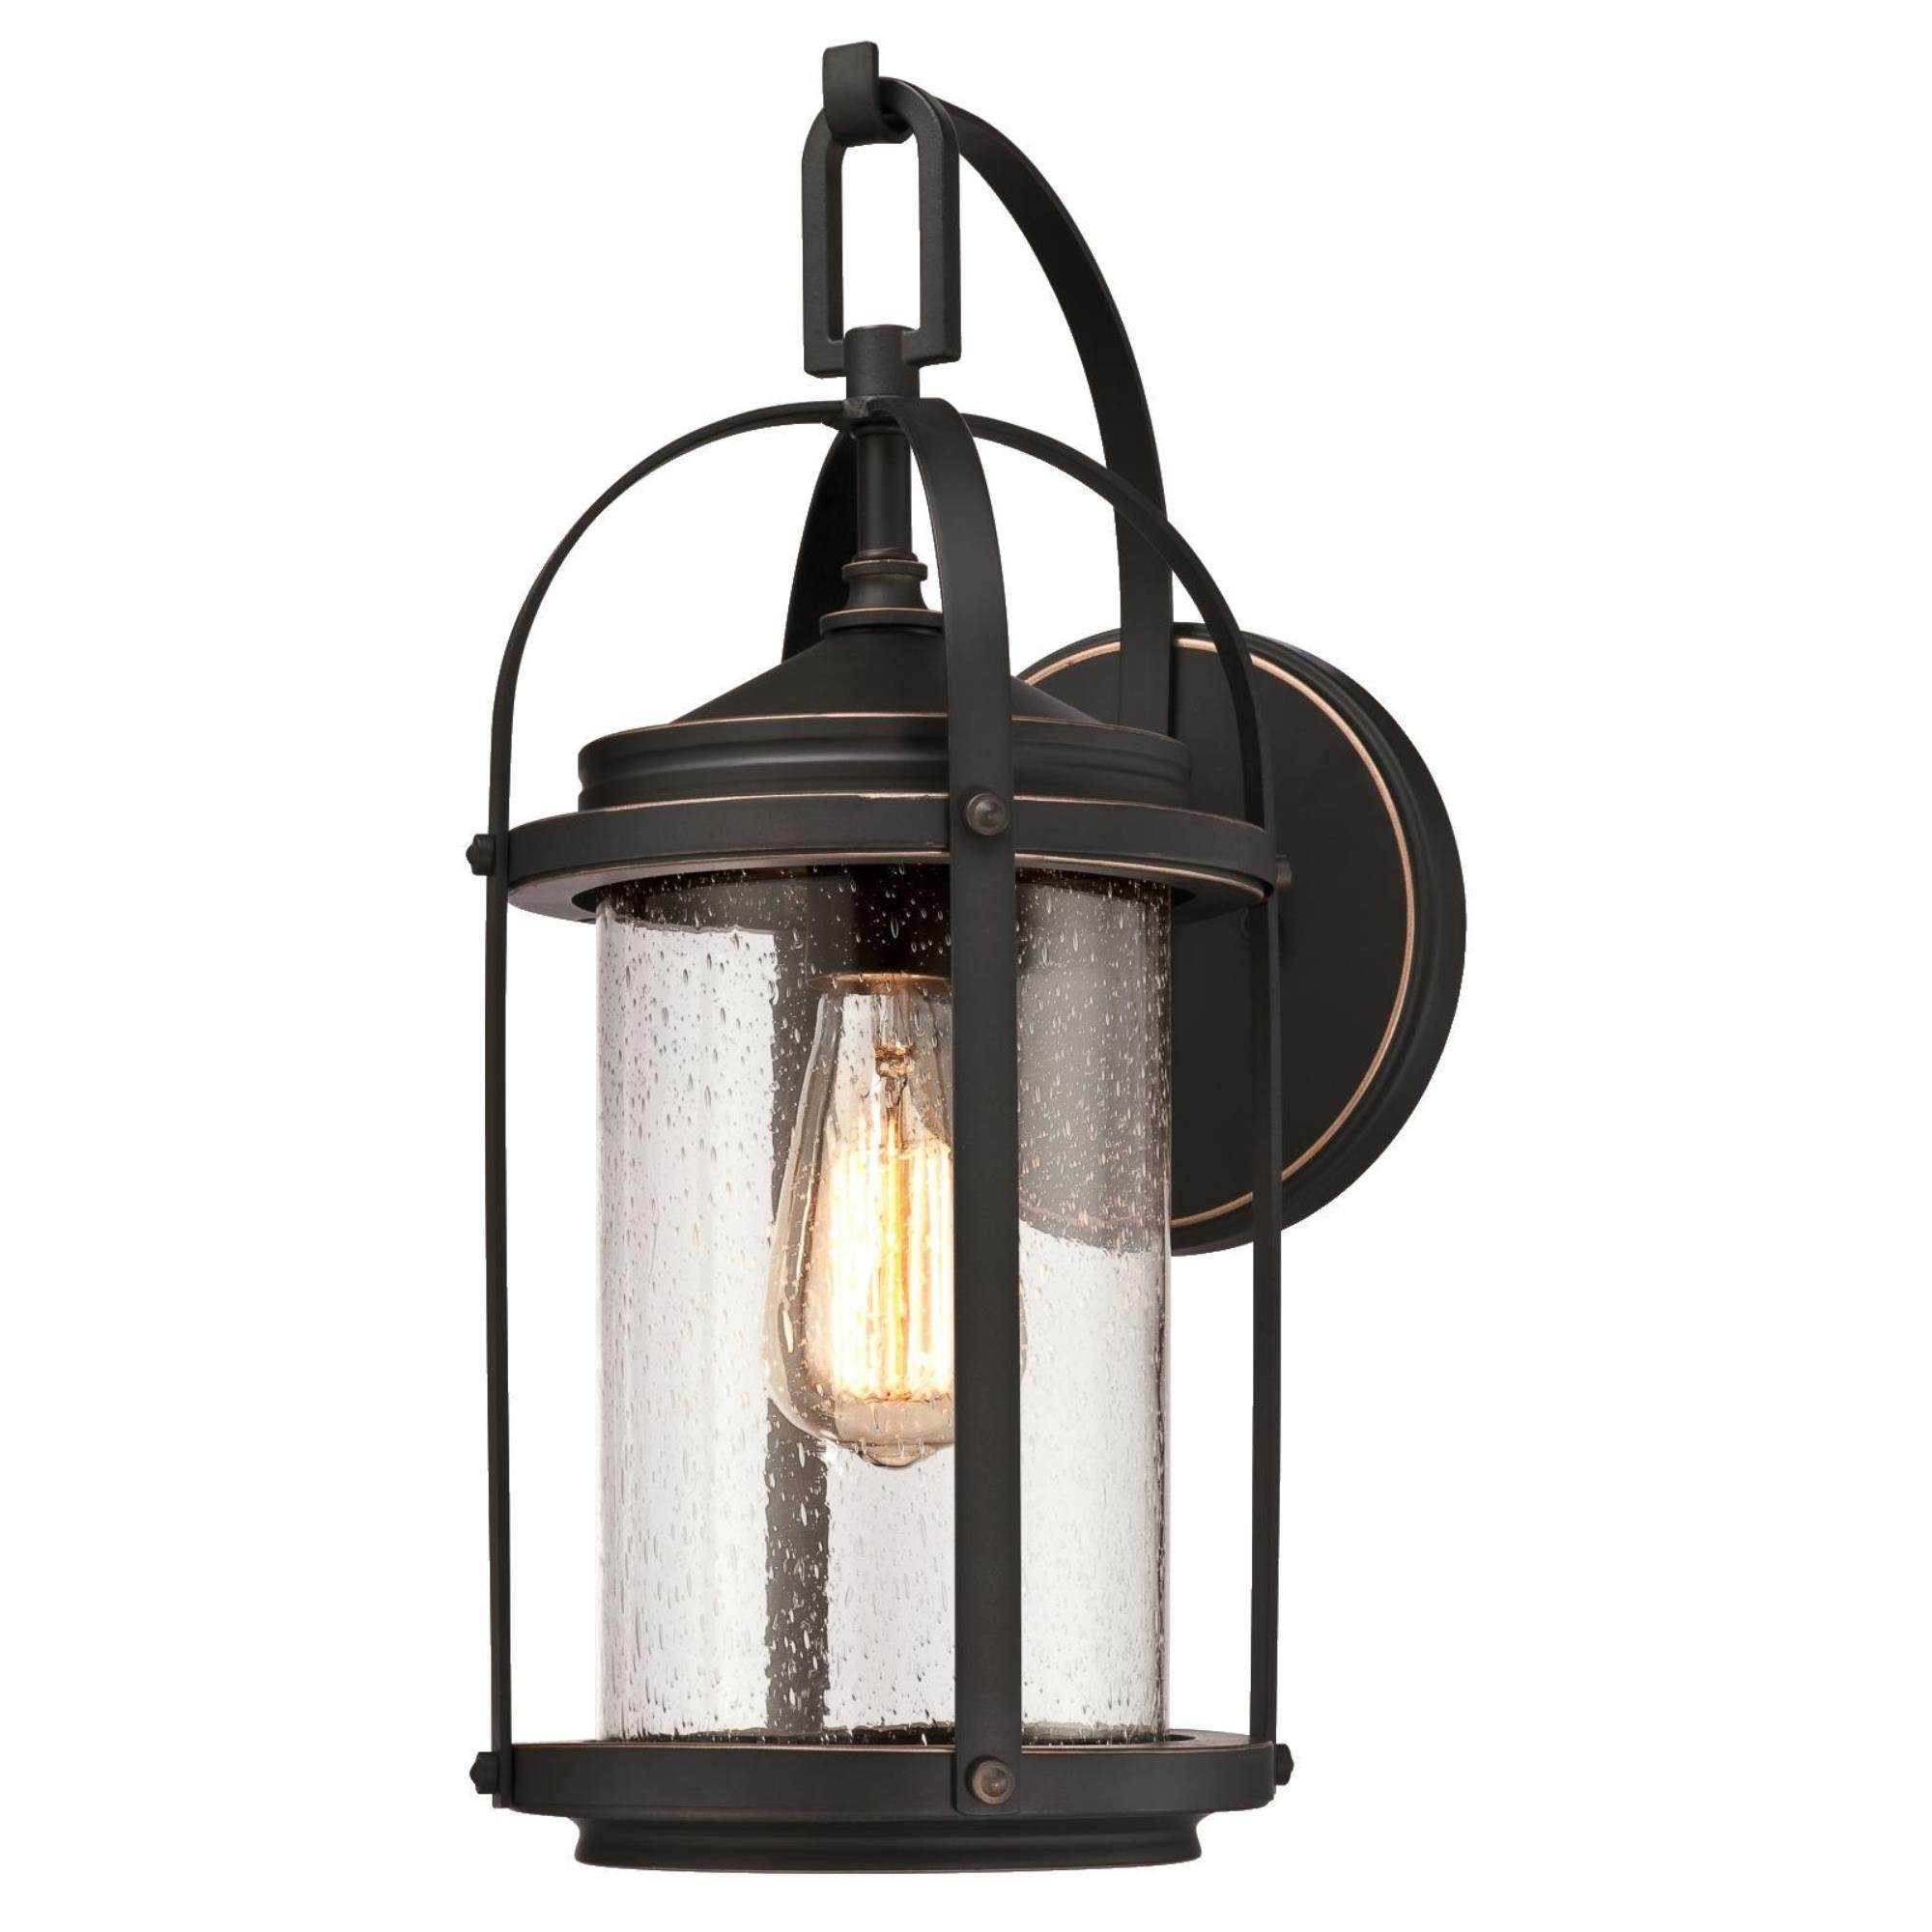 Westinghouse Lighting 6339300 Grandview One-Light Outdoor Wall Fixture, Oil Rubbed Bronze Finish with Highlights and Clear Seeded Glass by Westinghouse Lighting